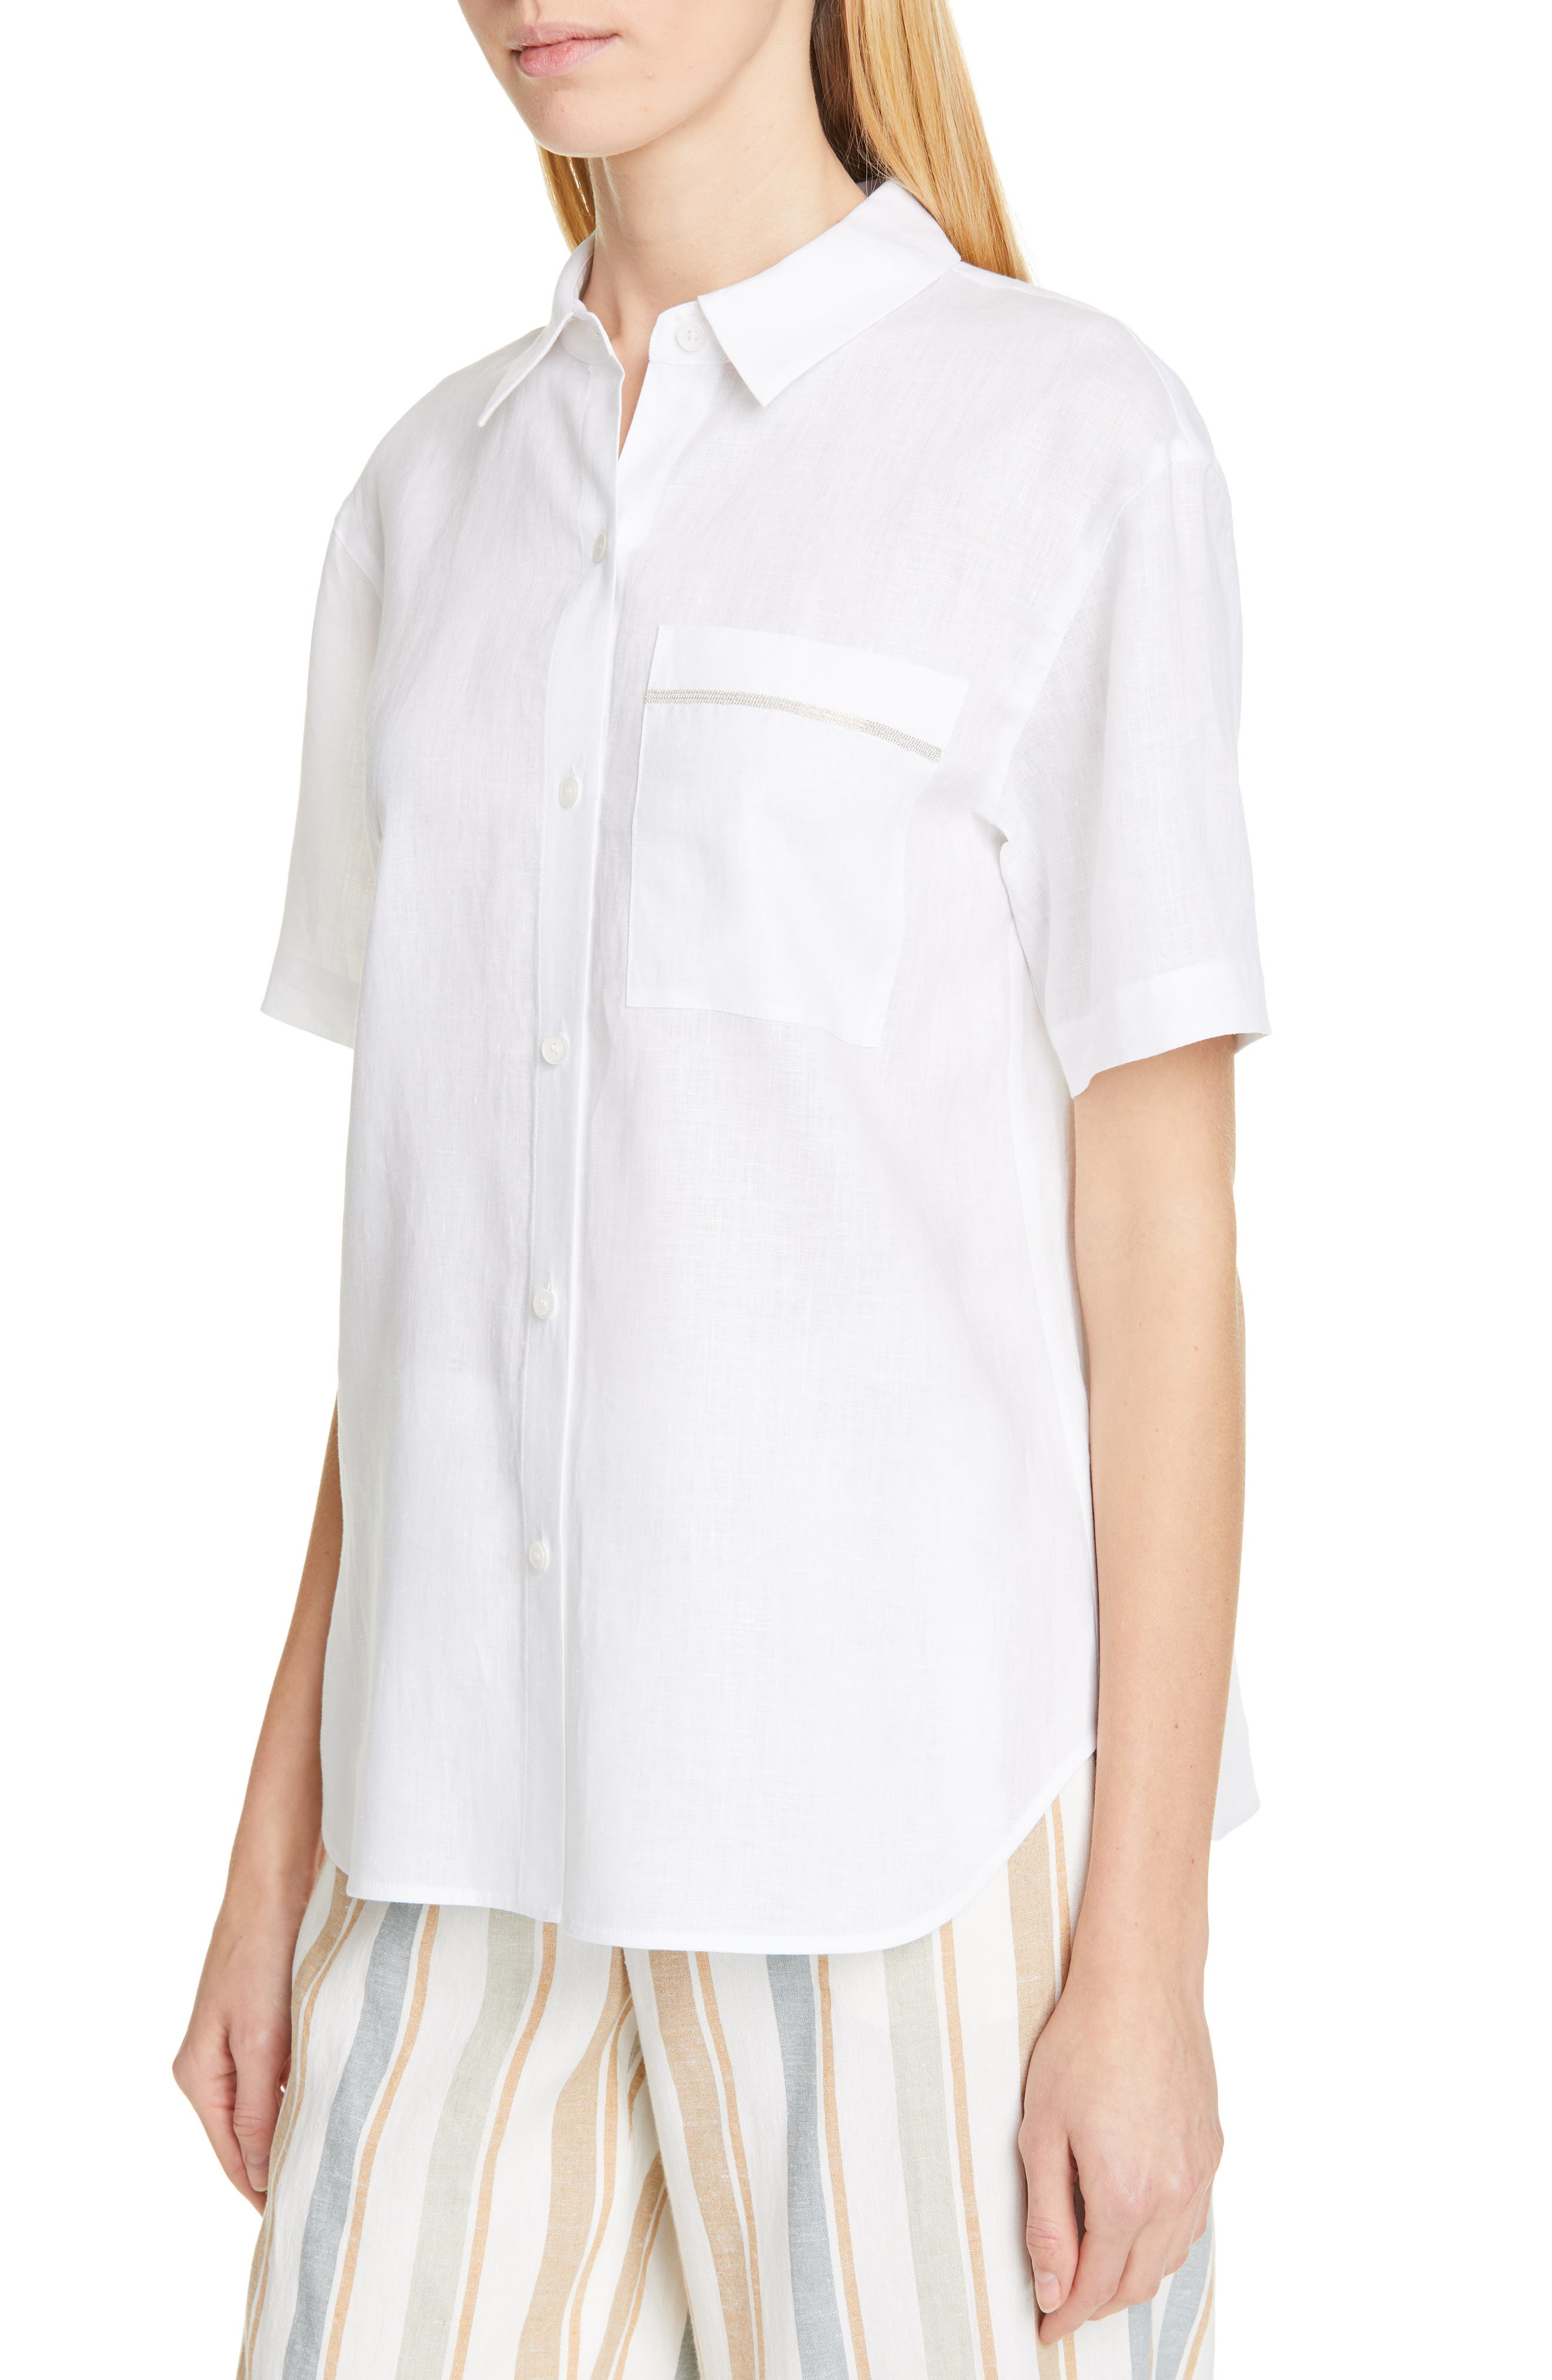 LAFAYETTE 148 NEW YORK, Justice Linen Shirt, Alternate thumbnail 5, color, WHITE